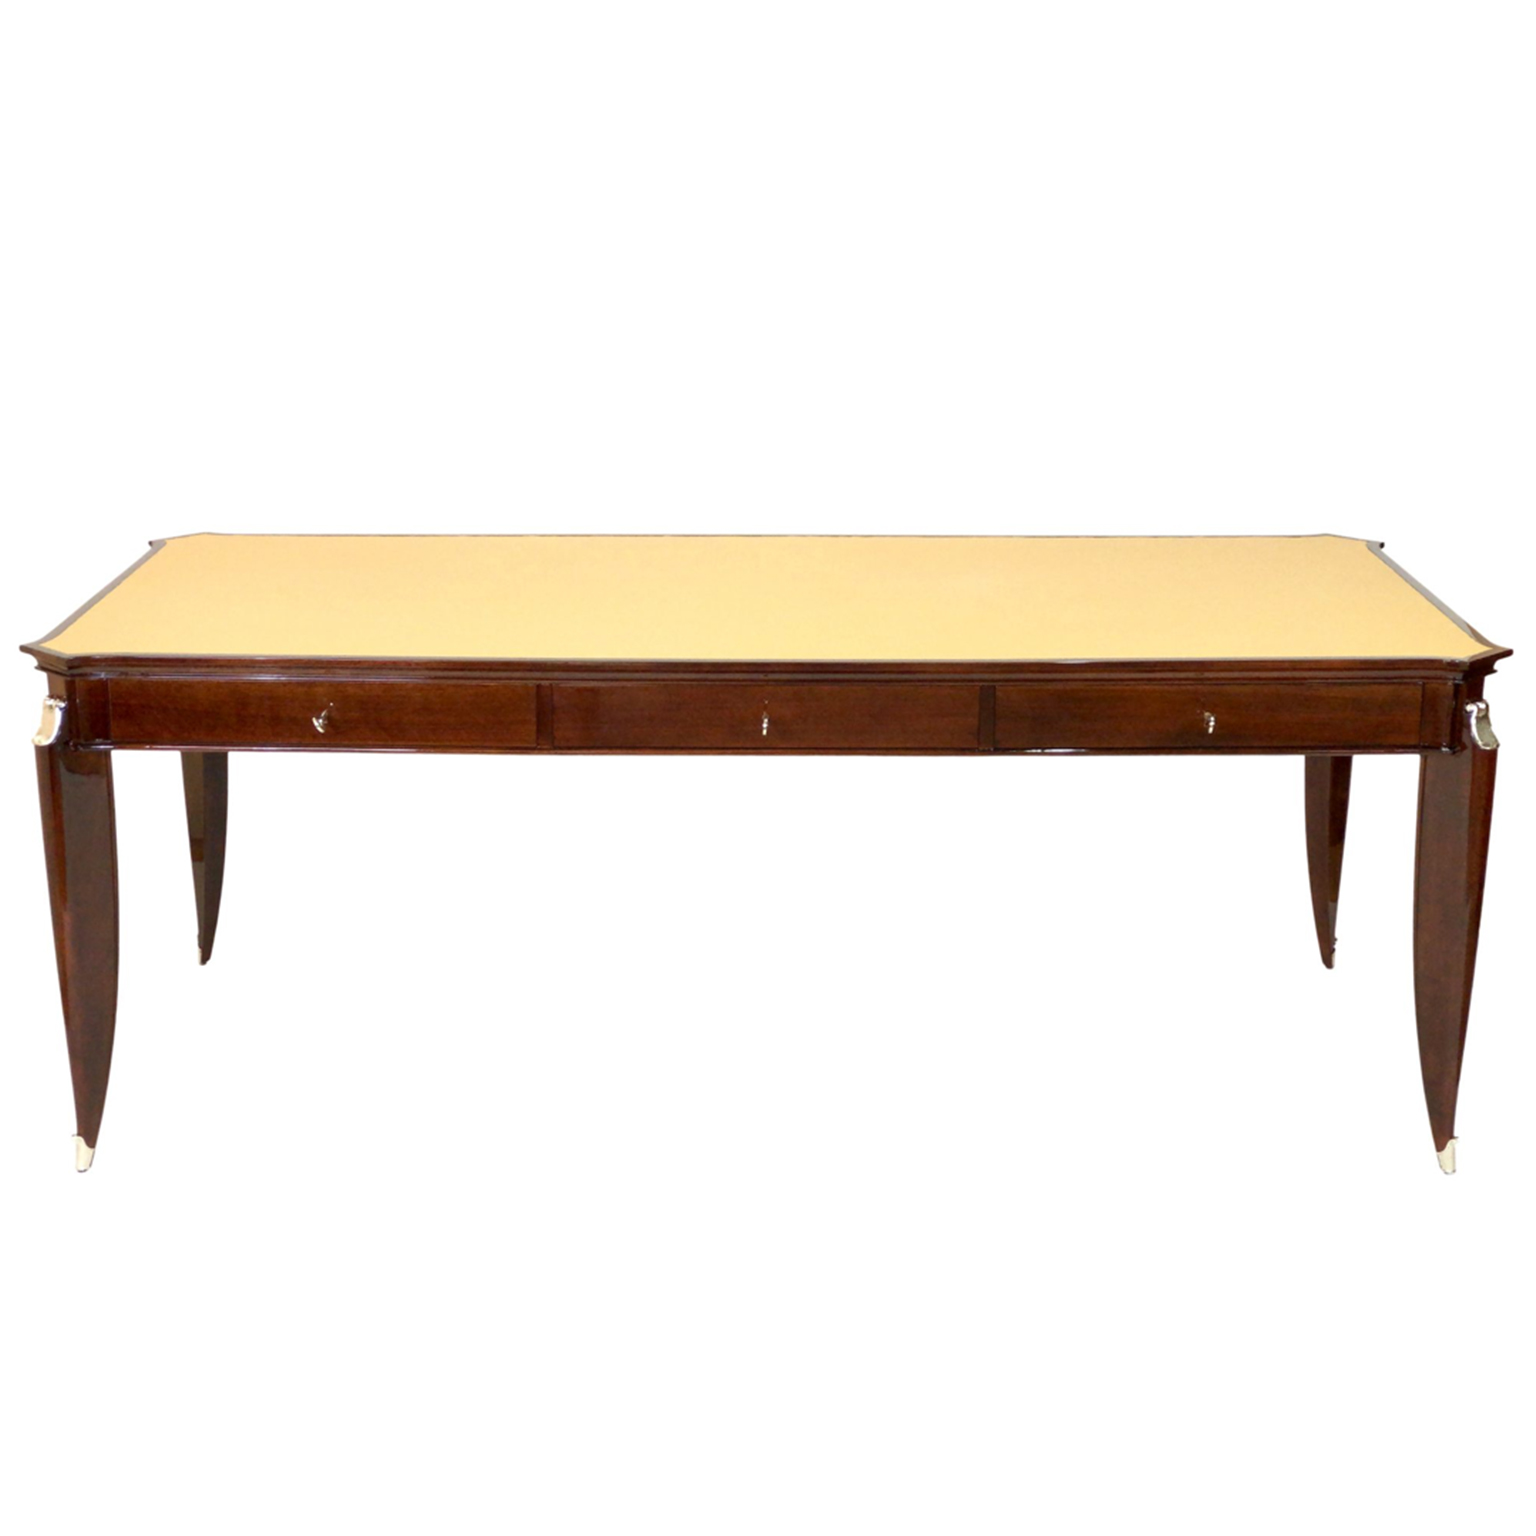 Art Deco desk designed by Jean Pascaud in brown mahogany wood and light leather top with nickel hardware and foot caps.